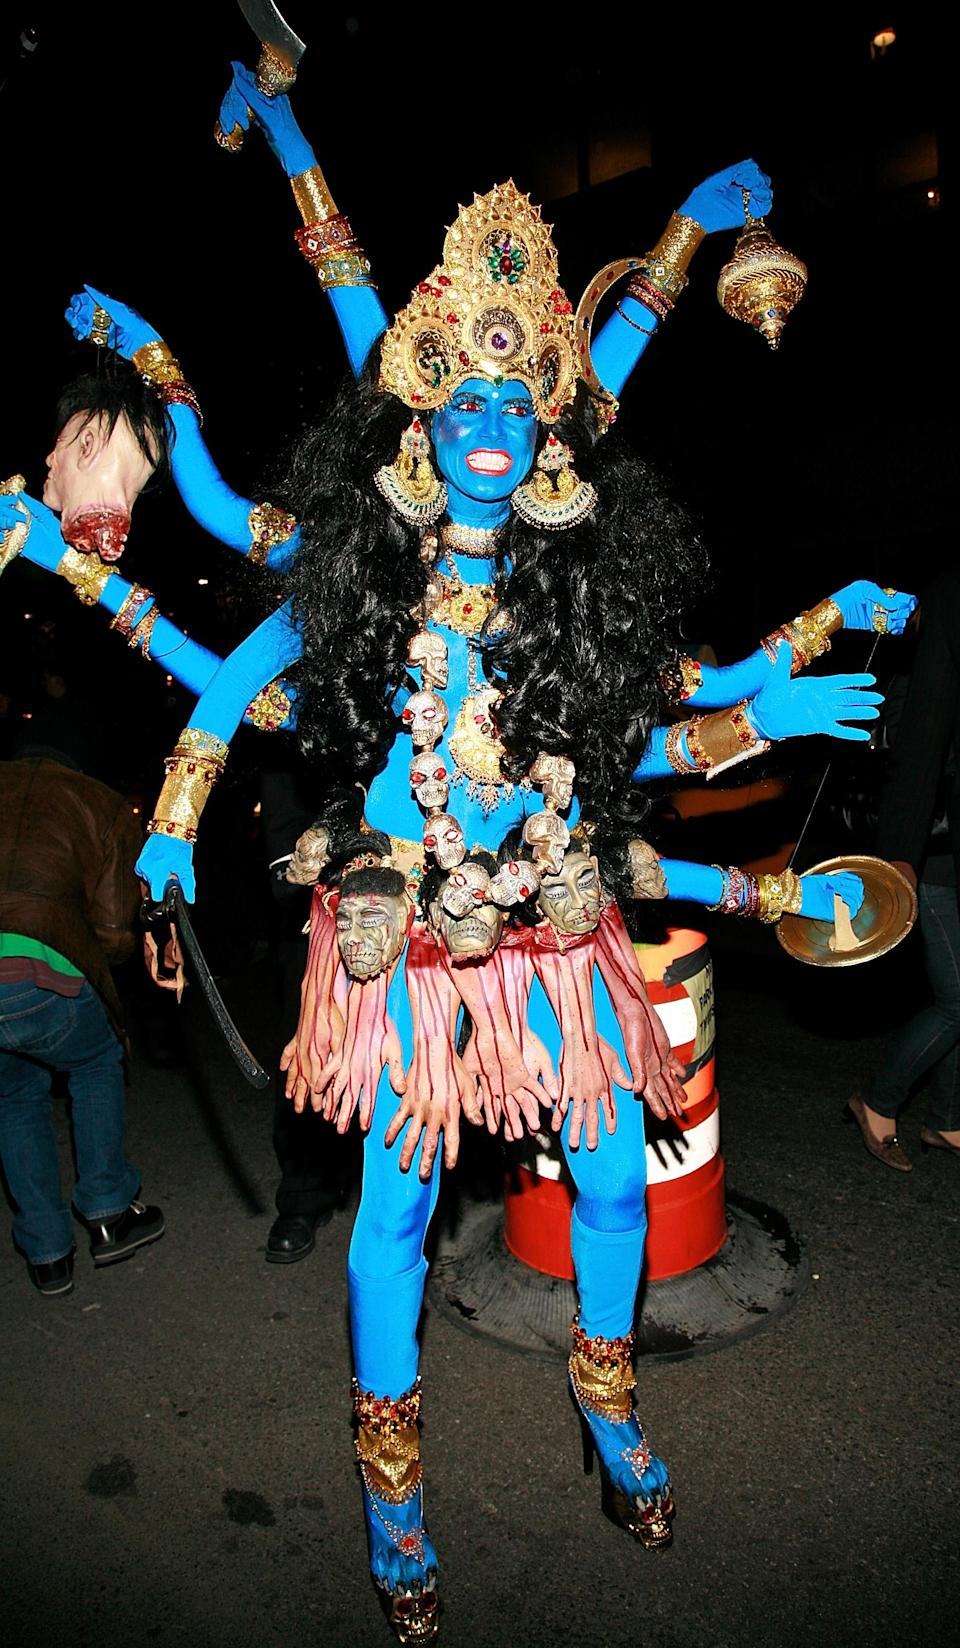 <p>Heidi Klum – also known as the unofficial Queen of Halloween – received a backlash in 2008 after transforming herself into Kali, the Hindu goddess of destruction. Painting herself blue and wearing eight arms as well as severed hands around her waist, Heidi was told off by leaders in the Hindu community.<br><i>[Photo: Getty]</i> </p>